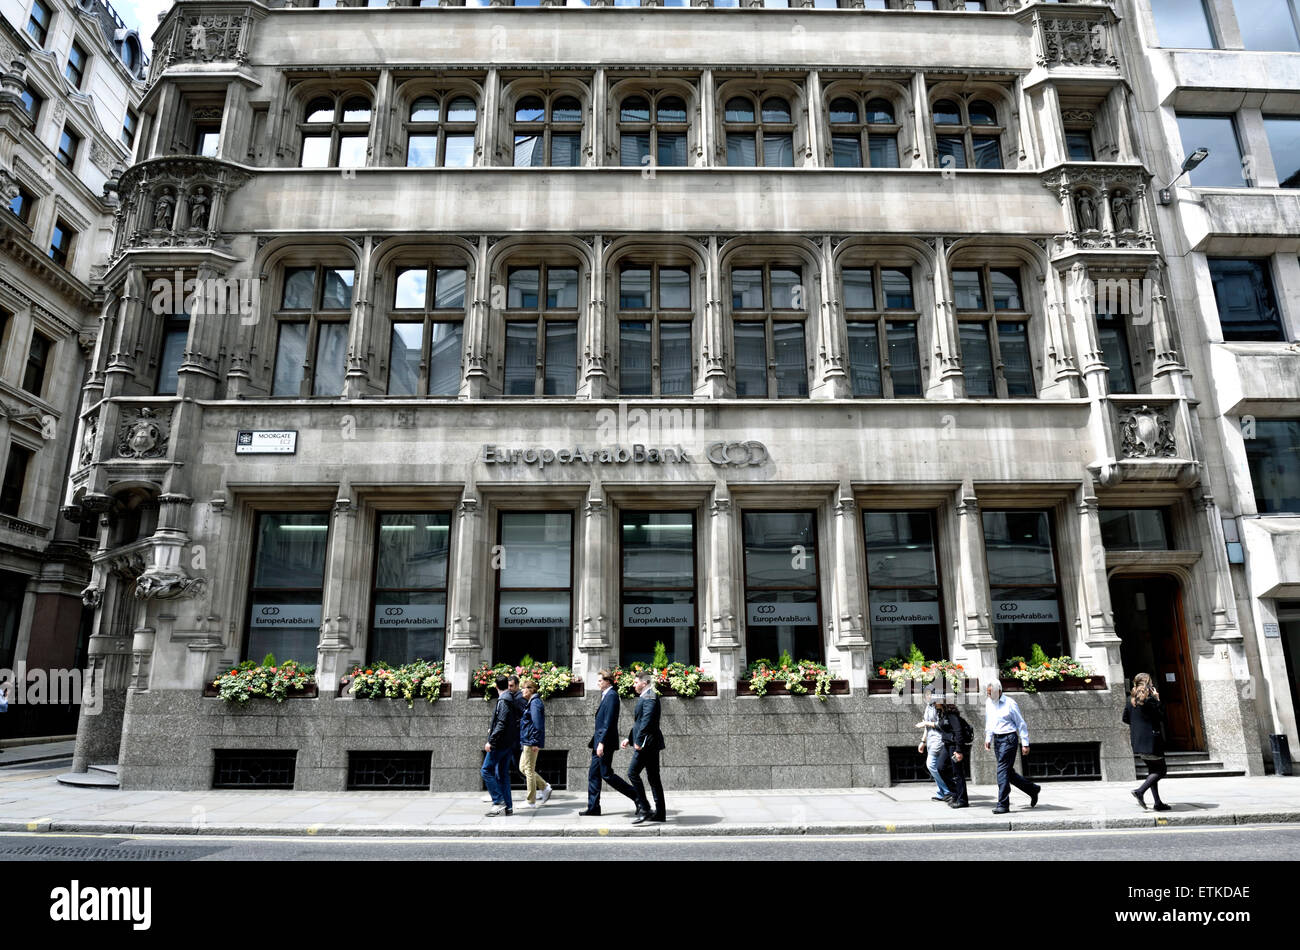 Europe Arab Bank with people passing Moorgate City of London England Britain UK - Stock Image